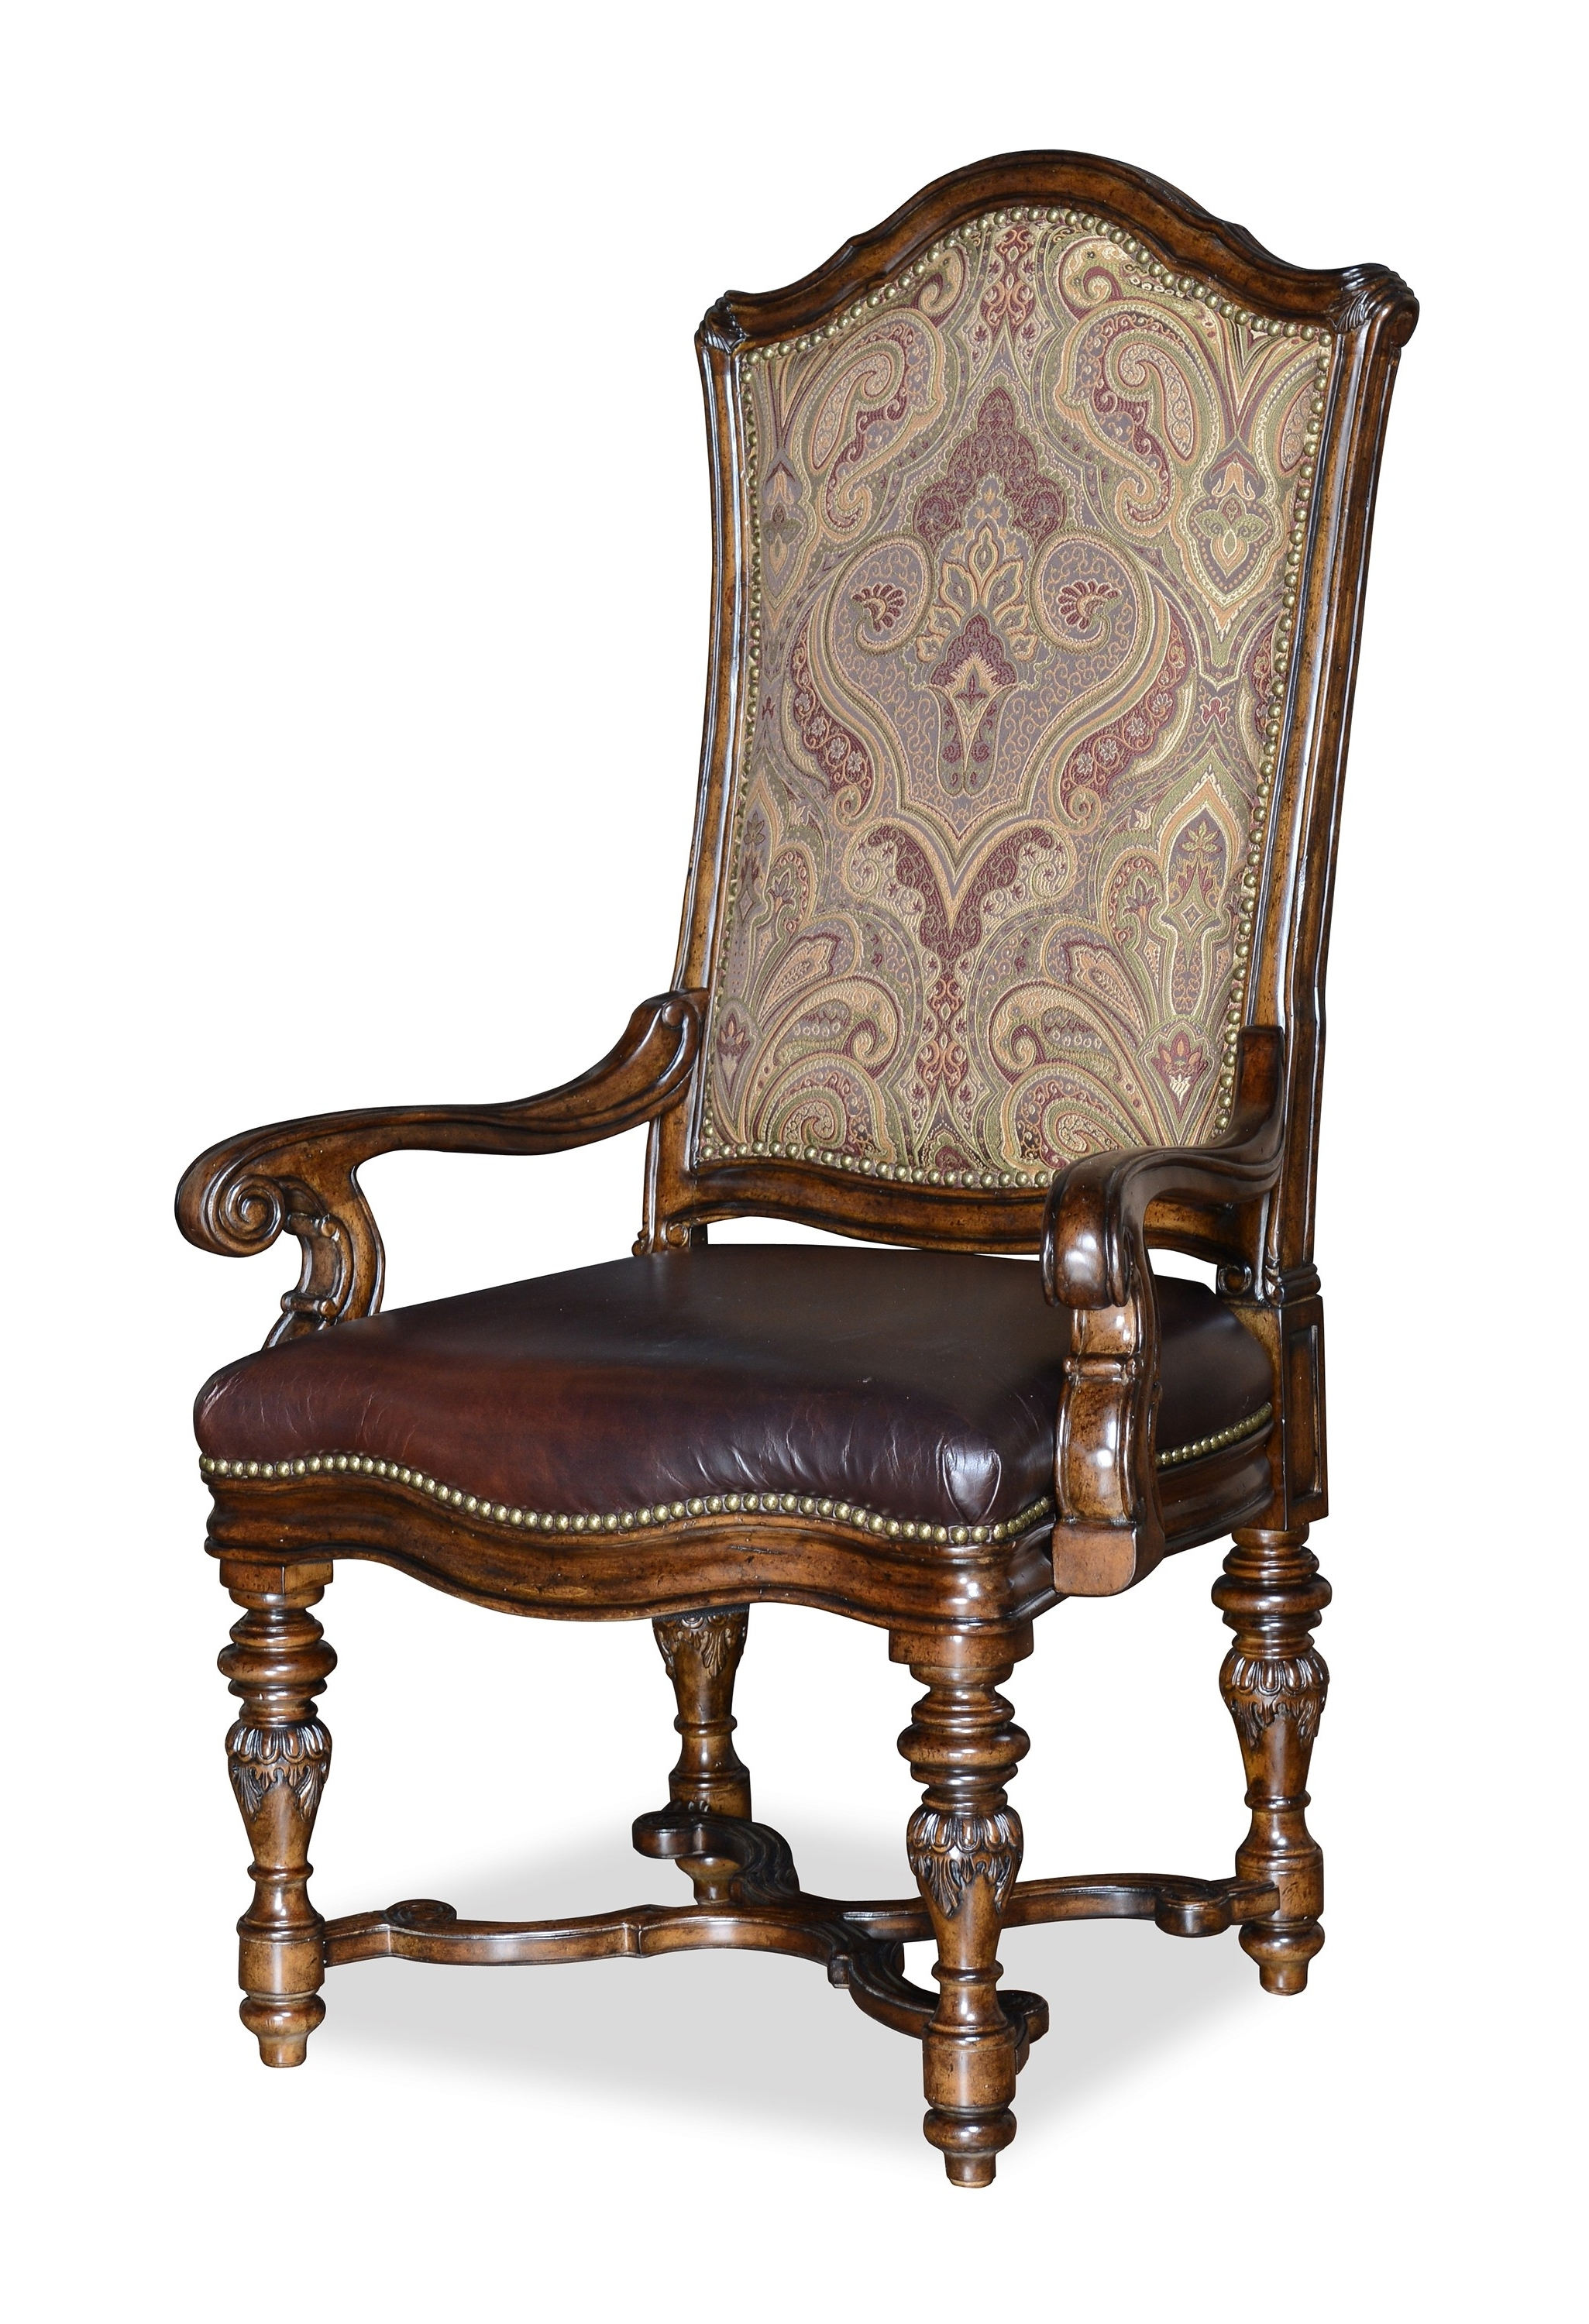 Valencia Side Chair Pertaining To Most Current Valencia Side Chairs With Upholstered Seat (View 2 of 20)